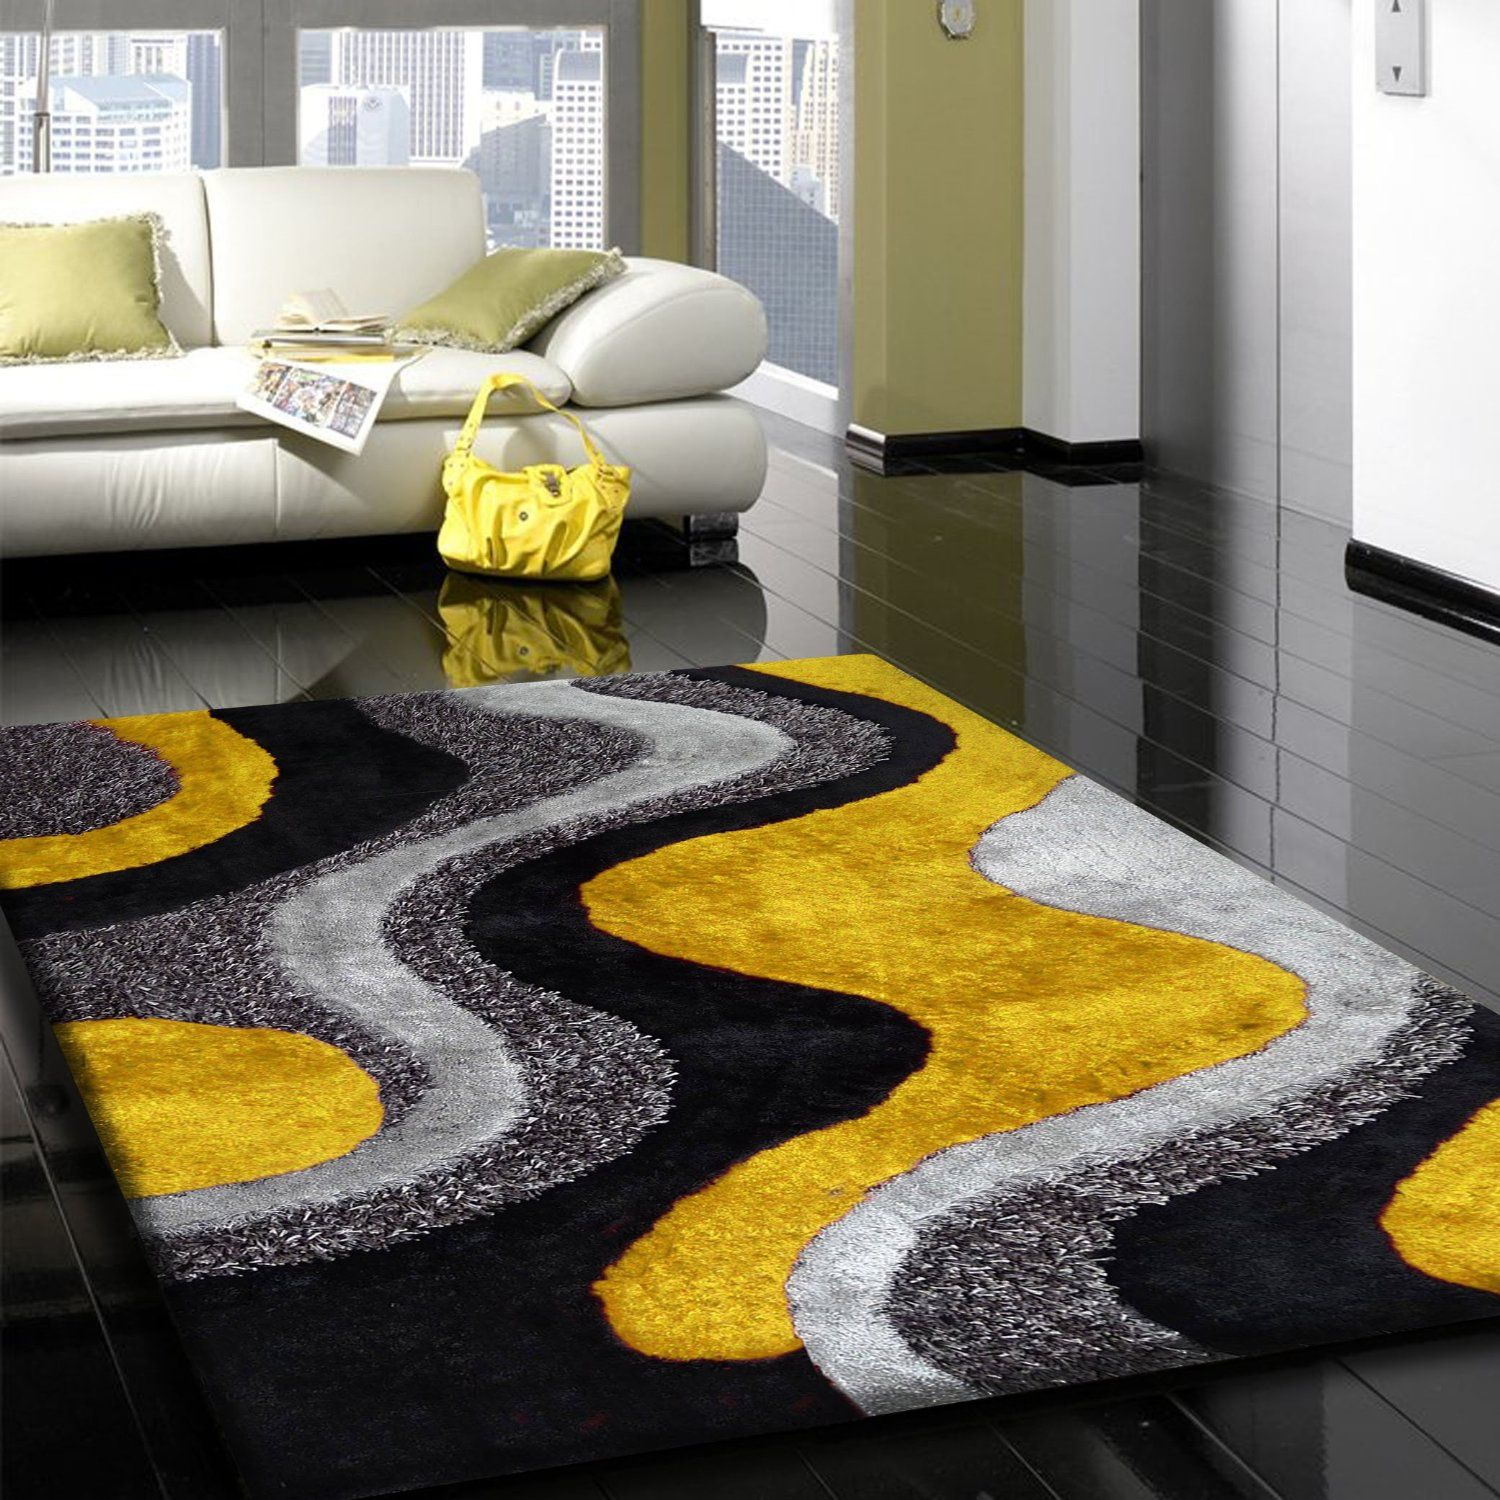 Best Wonderful Grey Sh*G Rug For Floor Decor Ideas Black 640 x 480